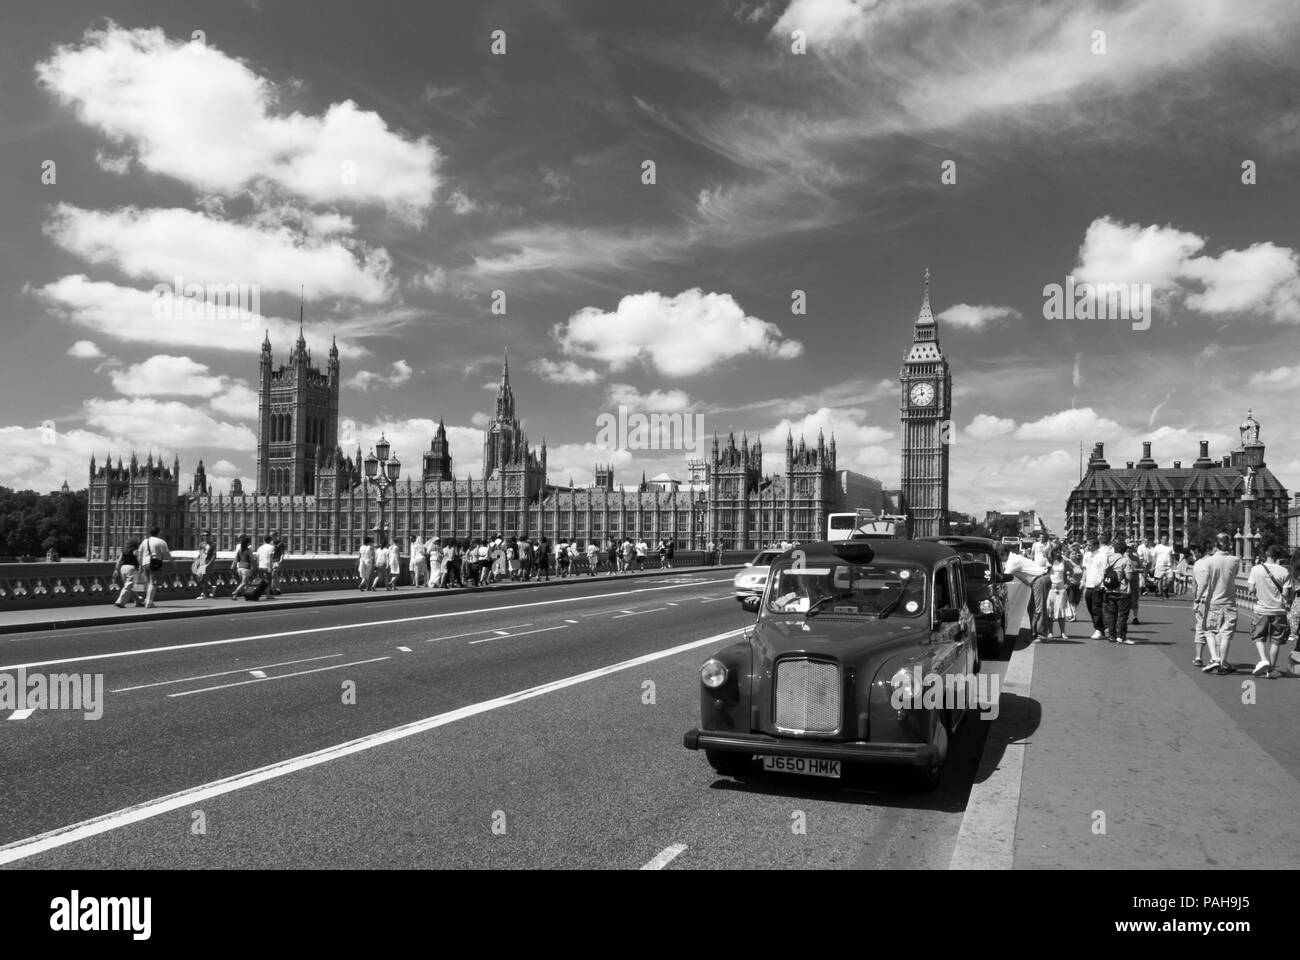 A black and white image of a London taxi cab stopped on Westminster bridge as tourists make their way to the Houses of Parliament and Big Ben - Stock Image